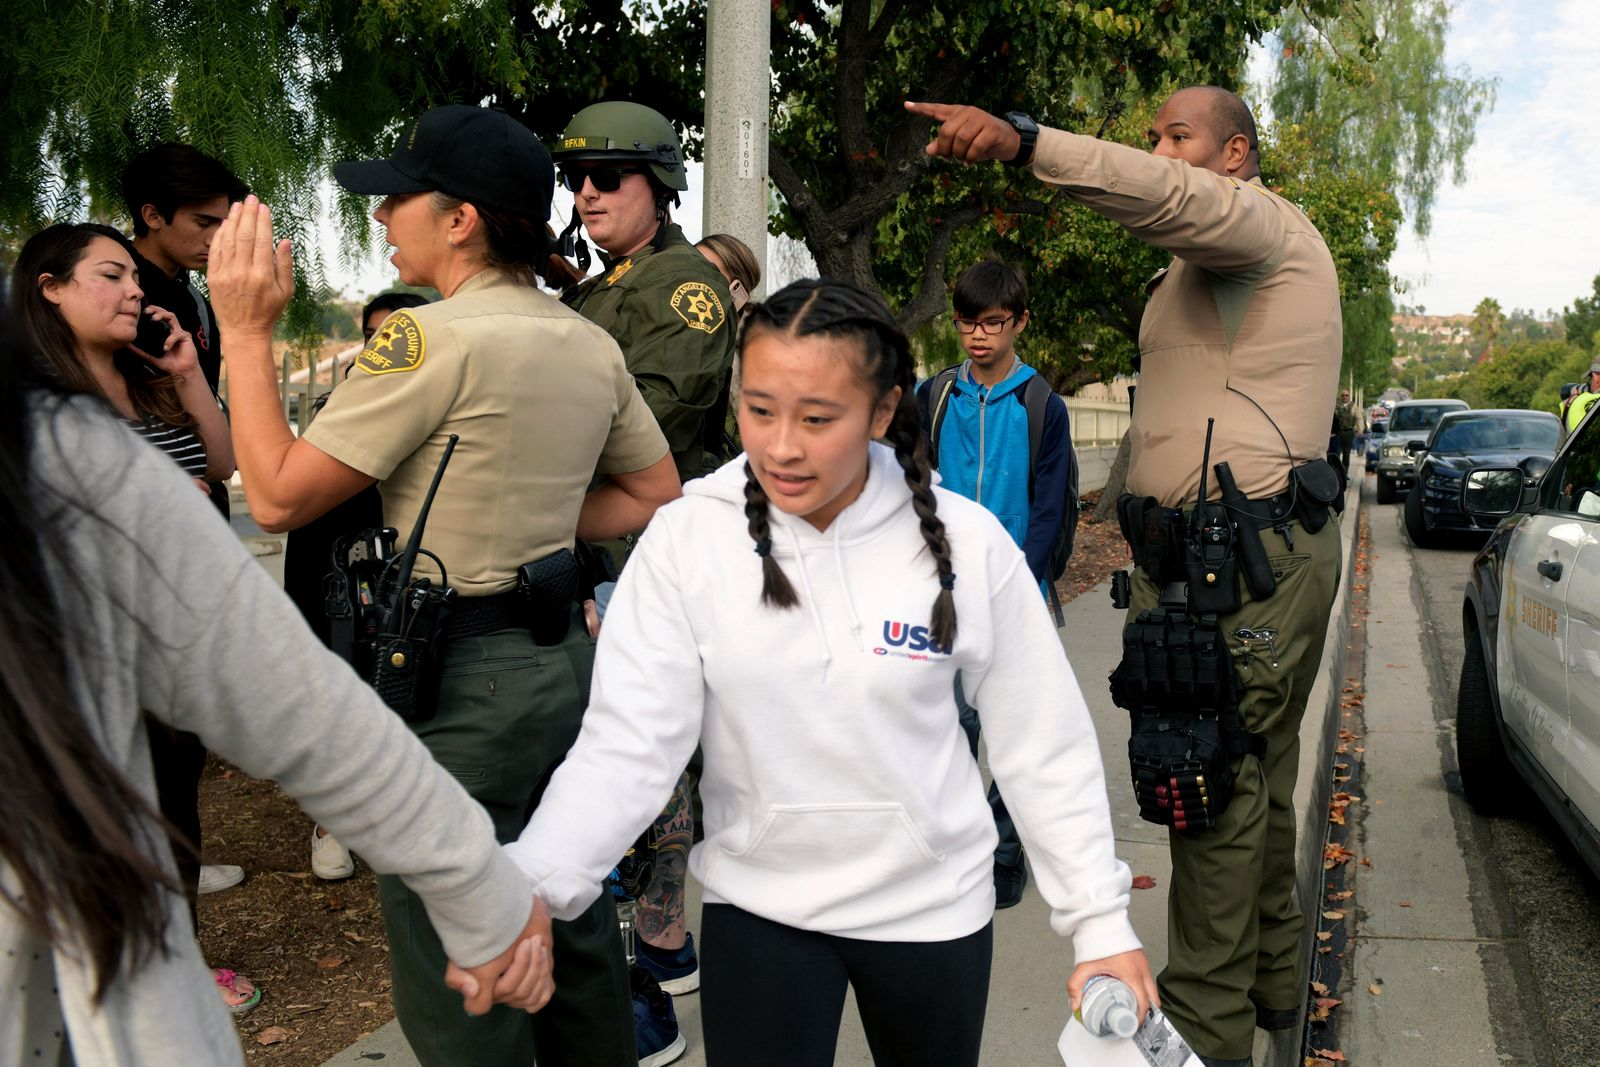 Students evacuate their campus after a gunman opened fire at Saugus High School on Thursday, Nov. 14, 2019, in Santa Clarita, Calif. (AP Photo/Christian Monterrosa)